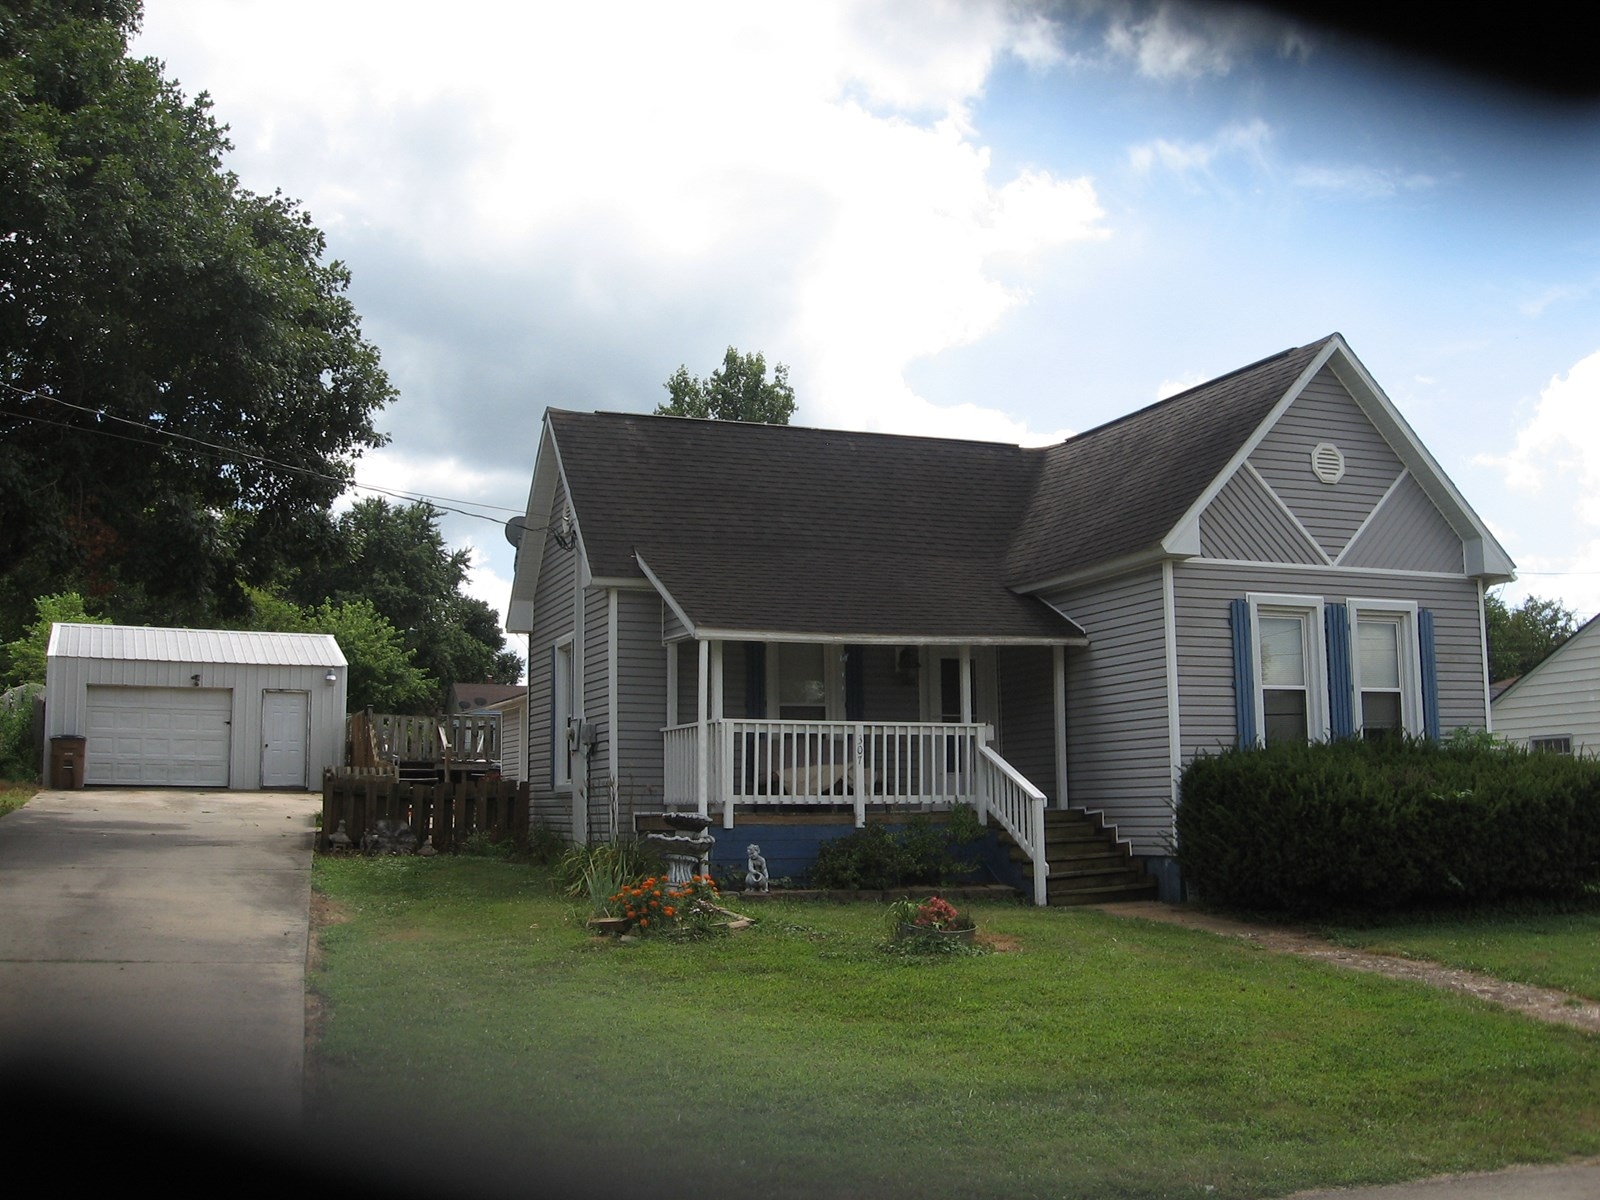 NICE 3-BR, 1-BA HOME IN FREDERICKTOWN, MO. :